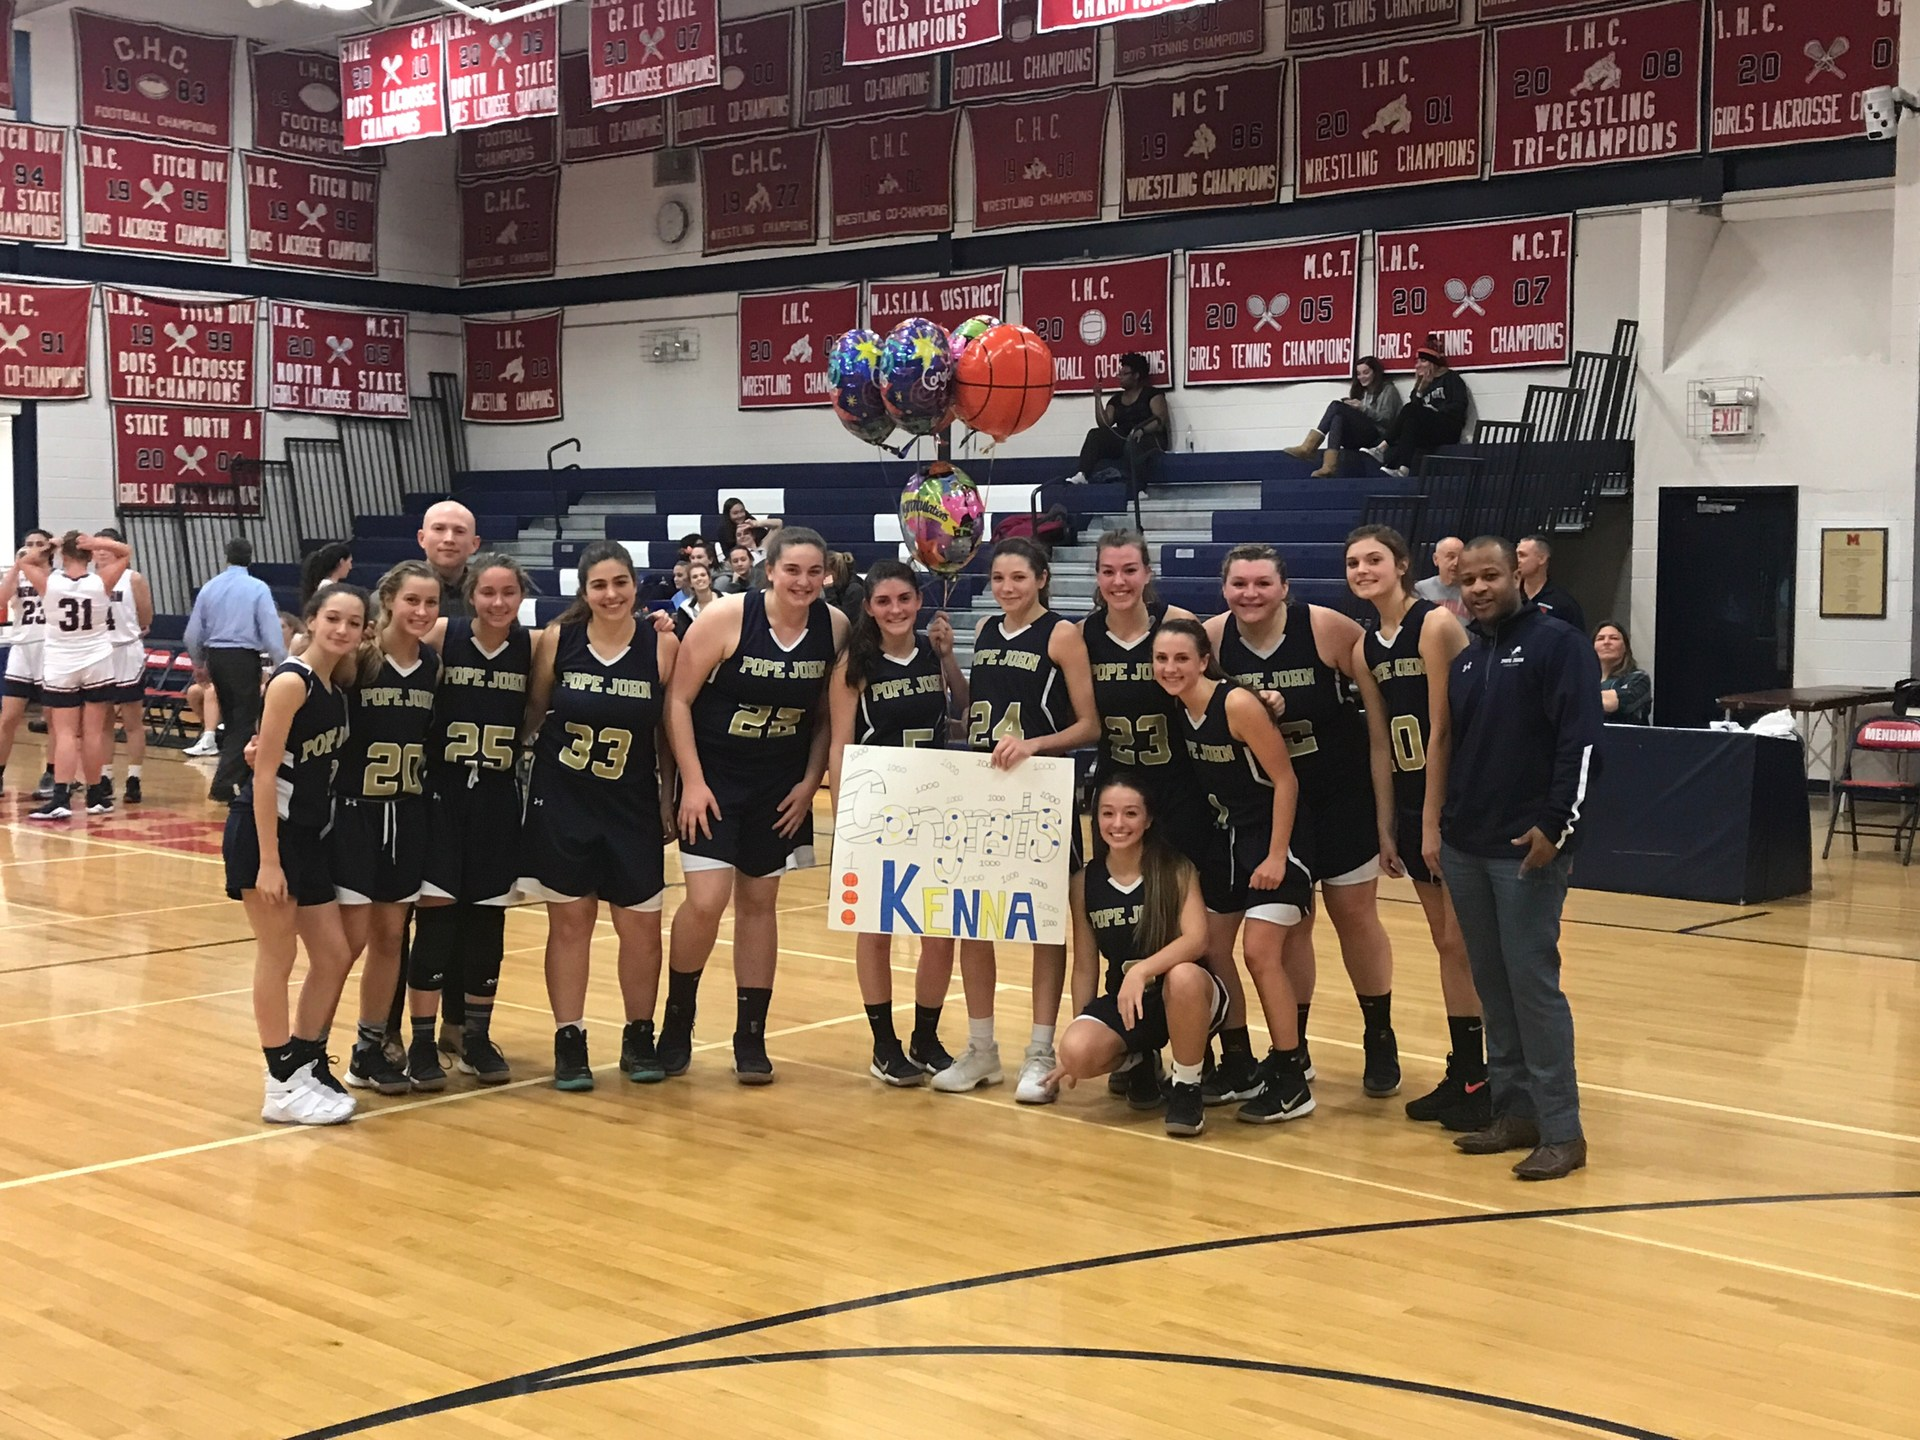 Girls basketball player poses with team after scoring 1,000th career point